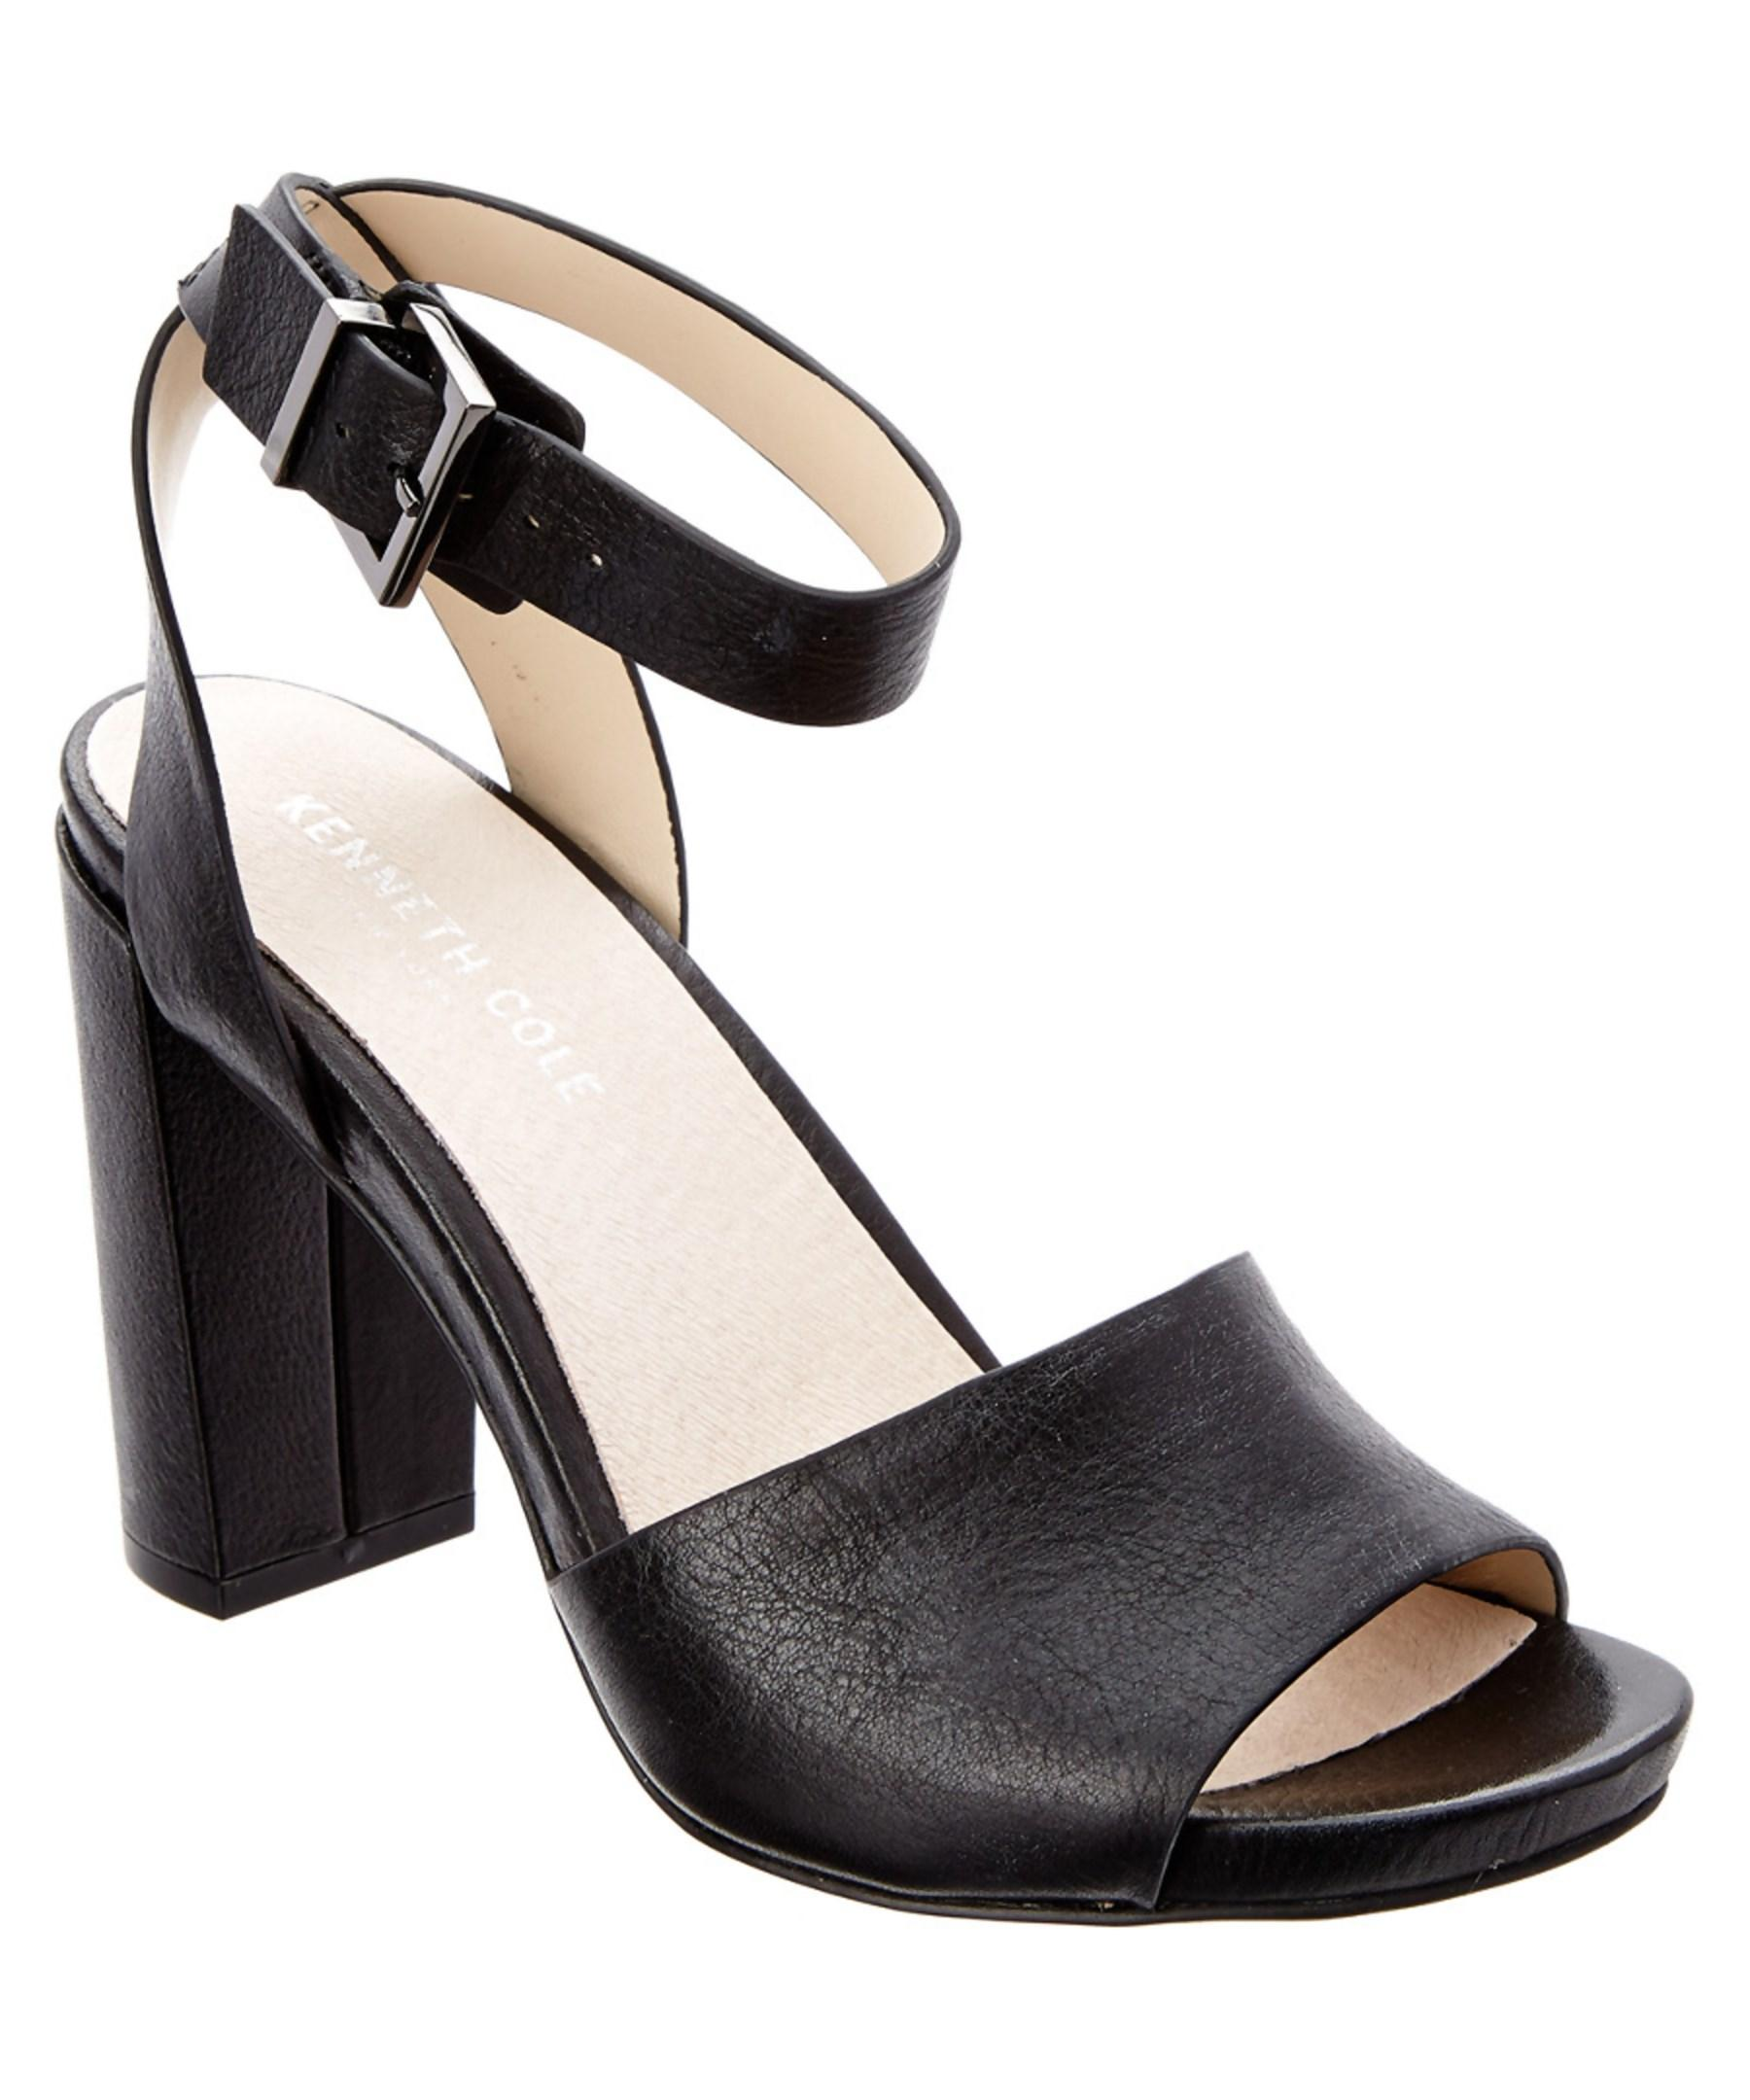 Kenneth Cole. Women's Black New York Toren Leather Sandal